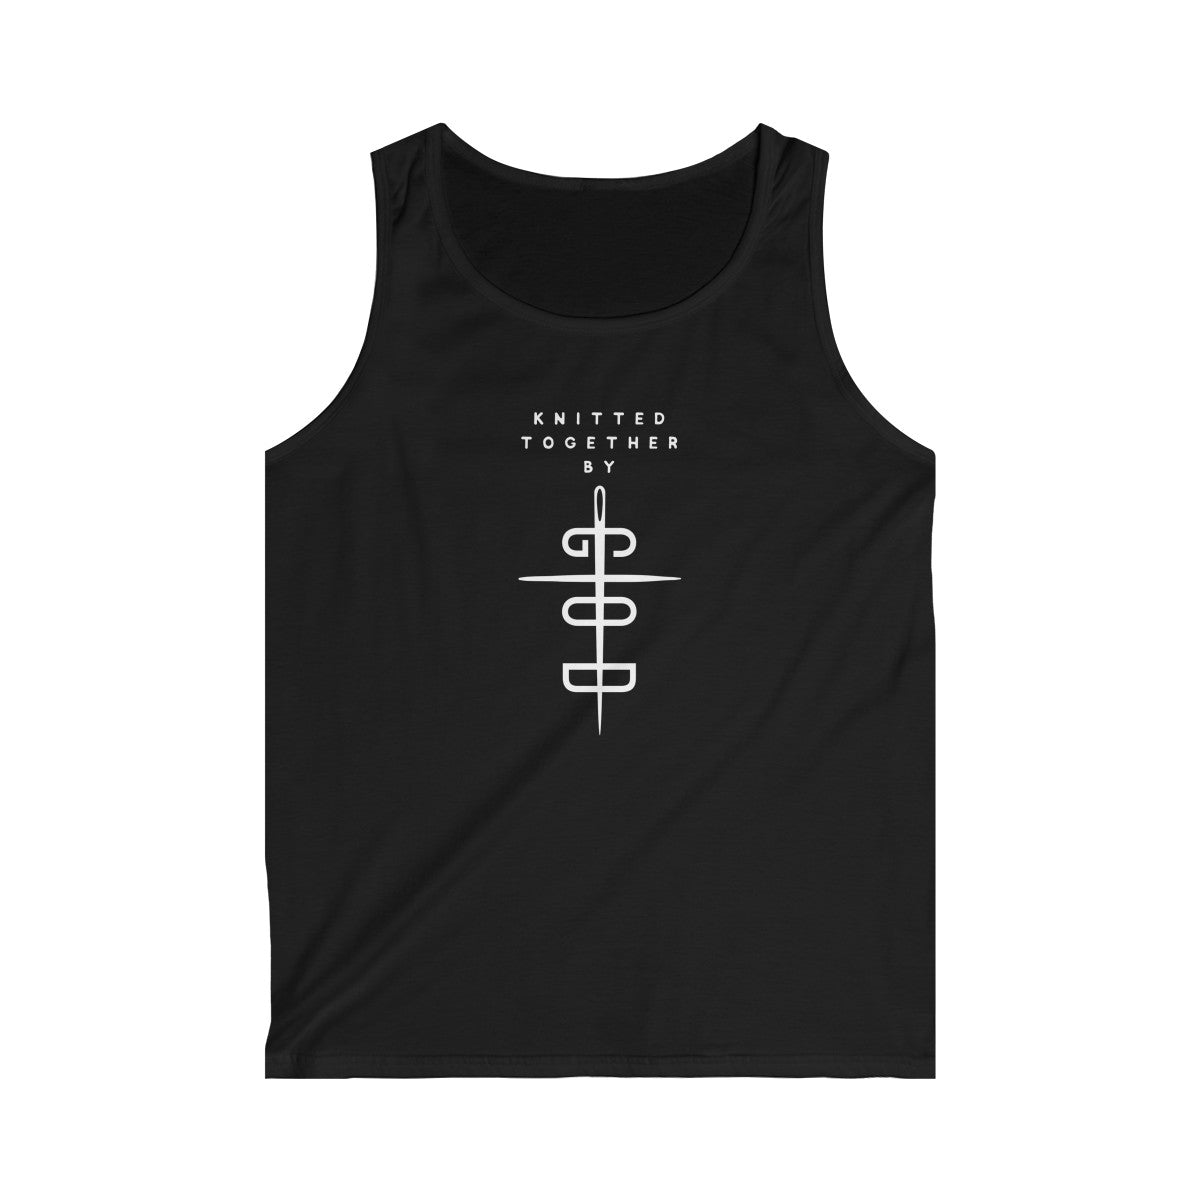 Knitted Together By God Men's Tank Top Dark Colors